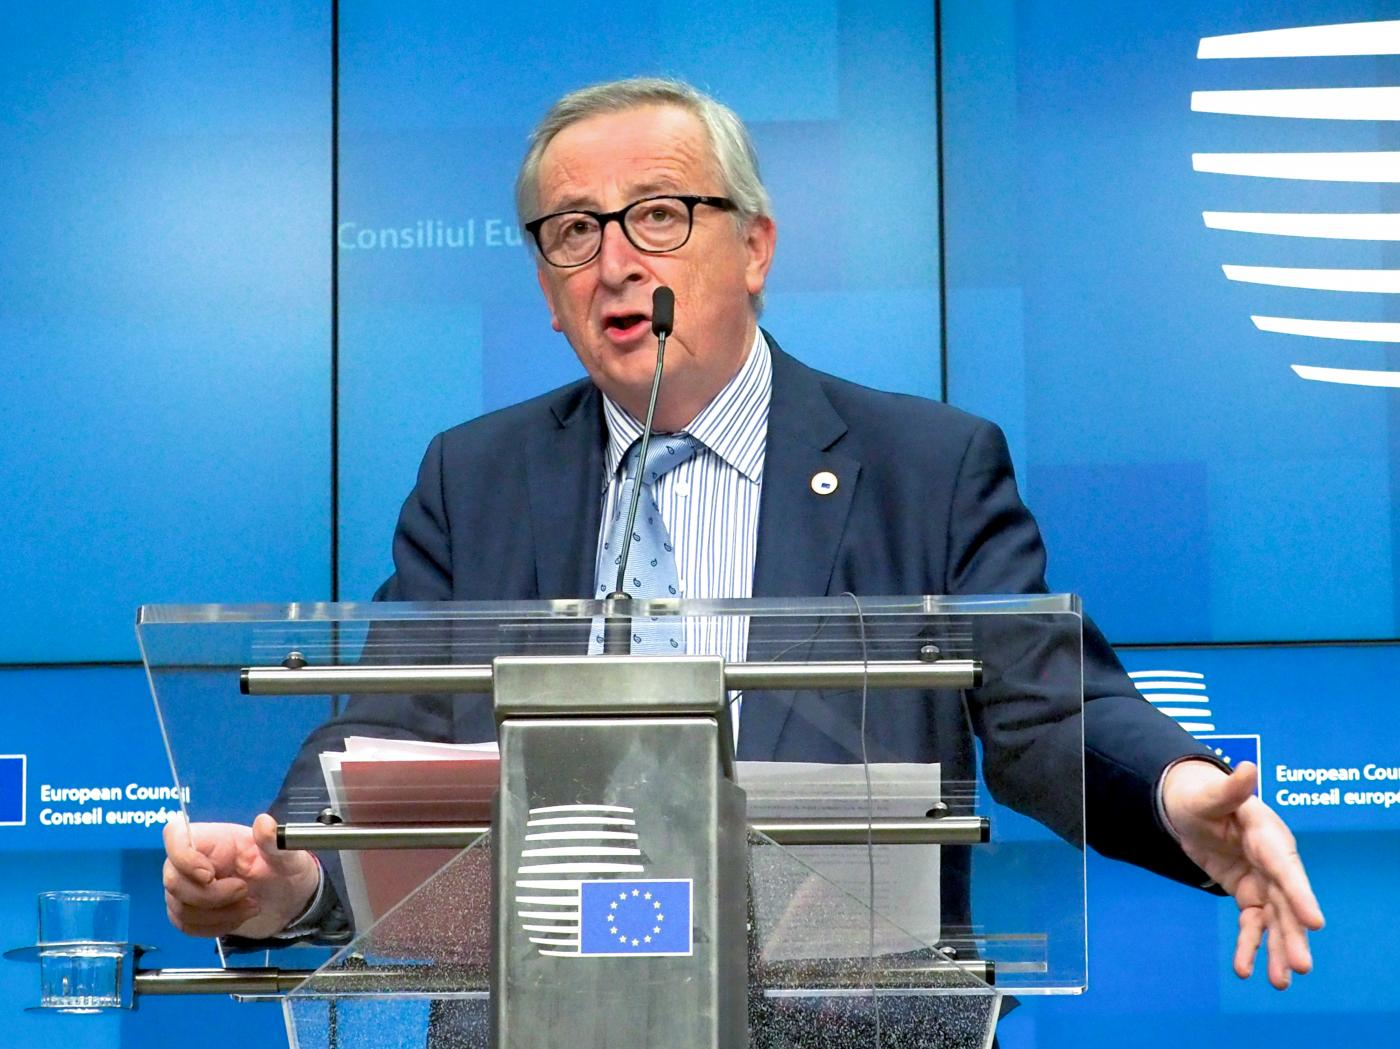 BELGIUM-BRUSSELS-EU-SUMMIT-PRESS CONFERENCE by European Union.